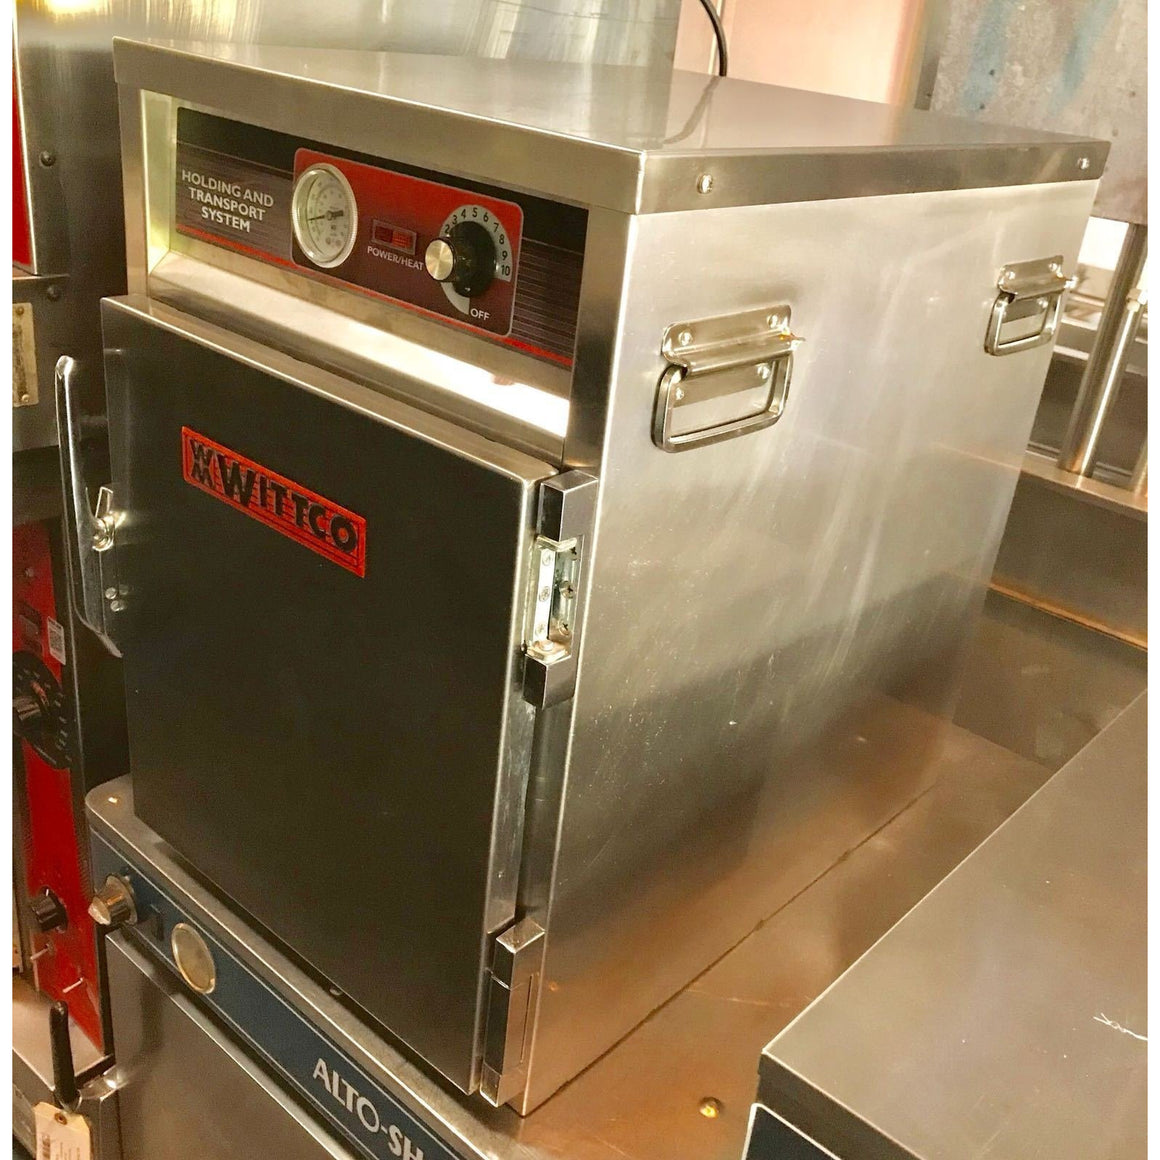 Wittco - Warming Oven-Food Holding and Transport Capacity